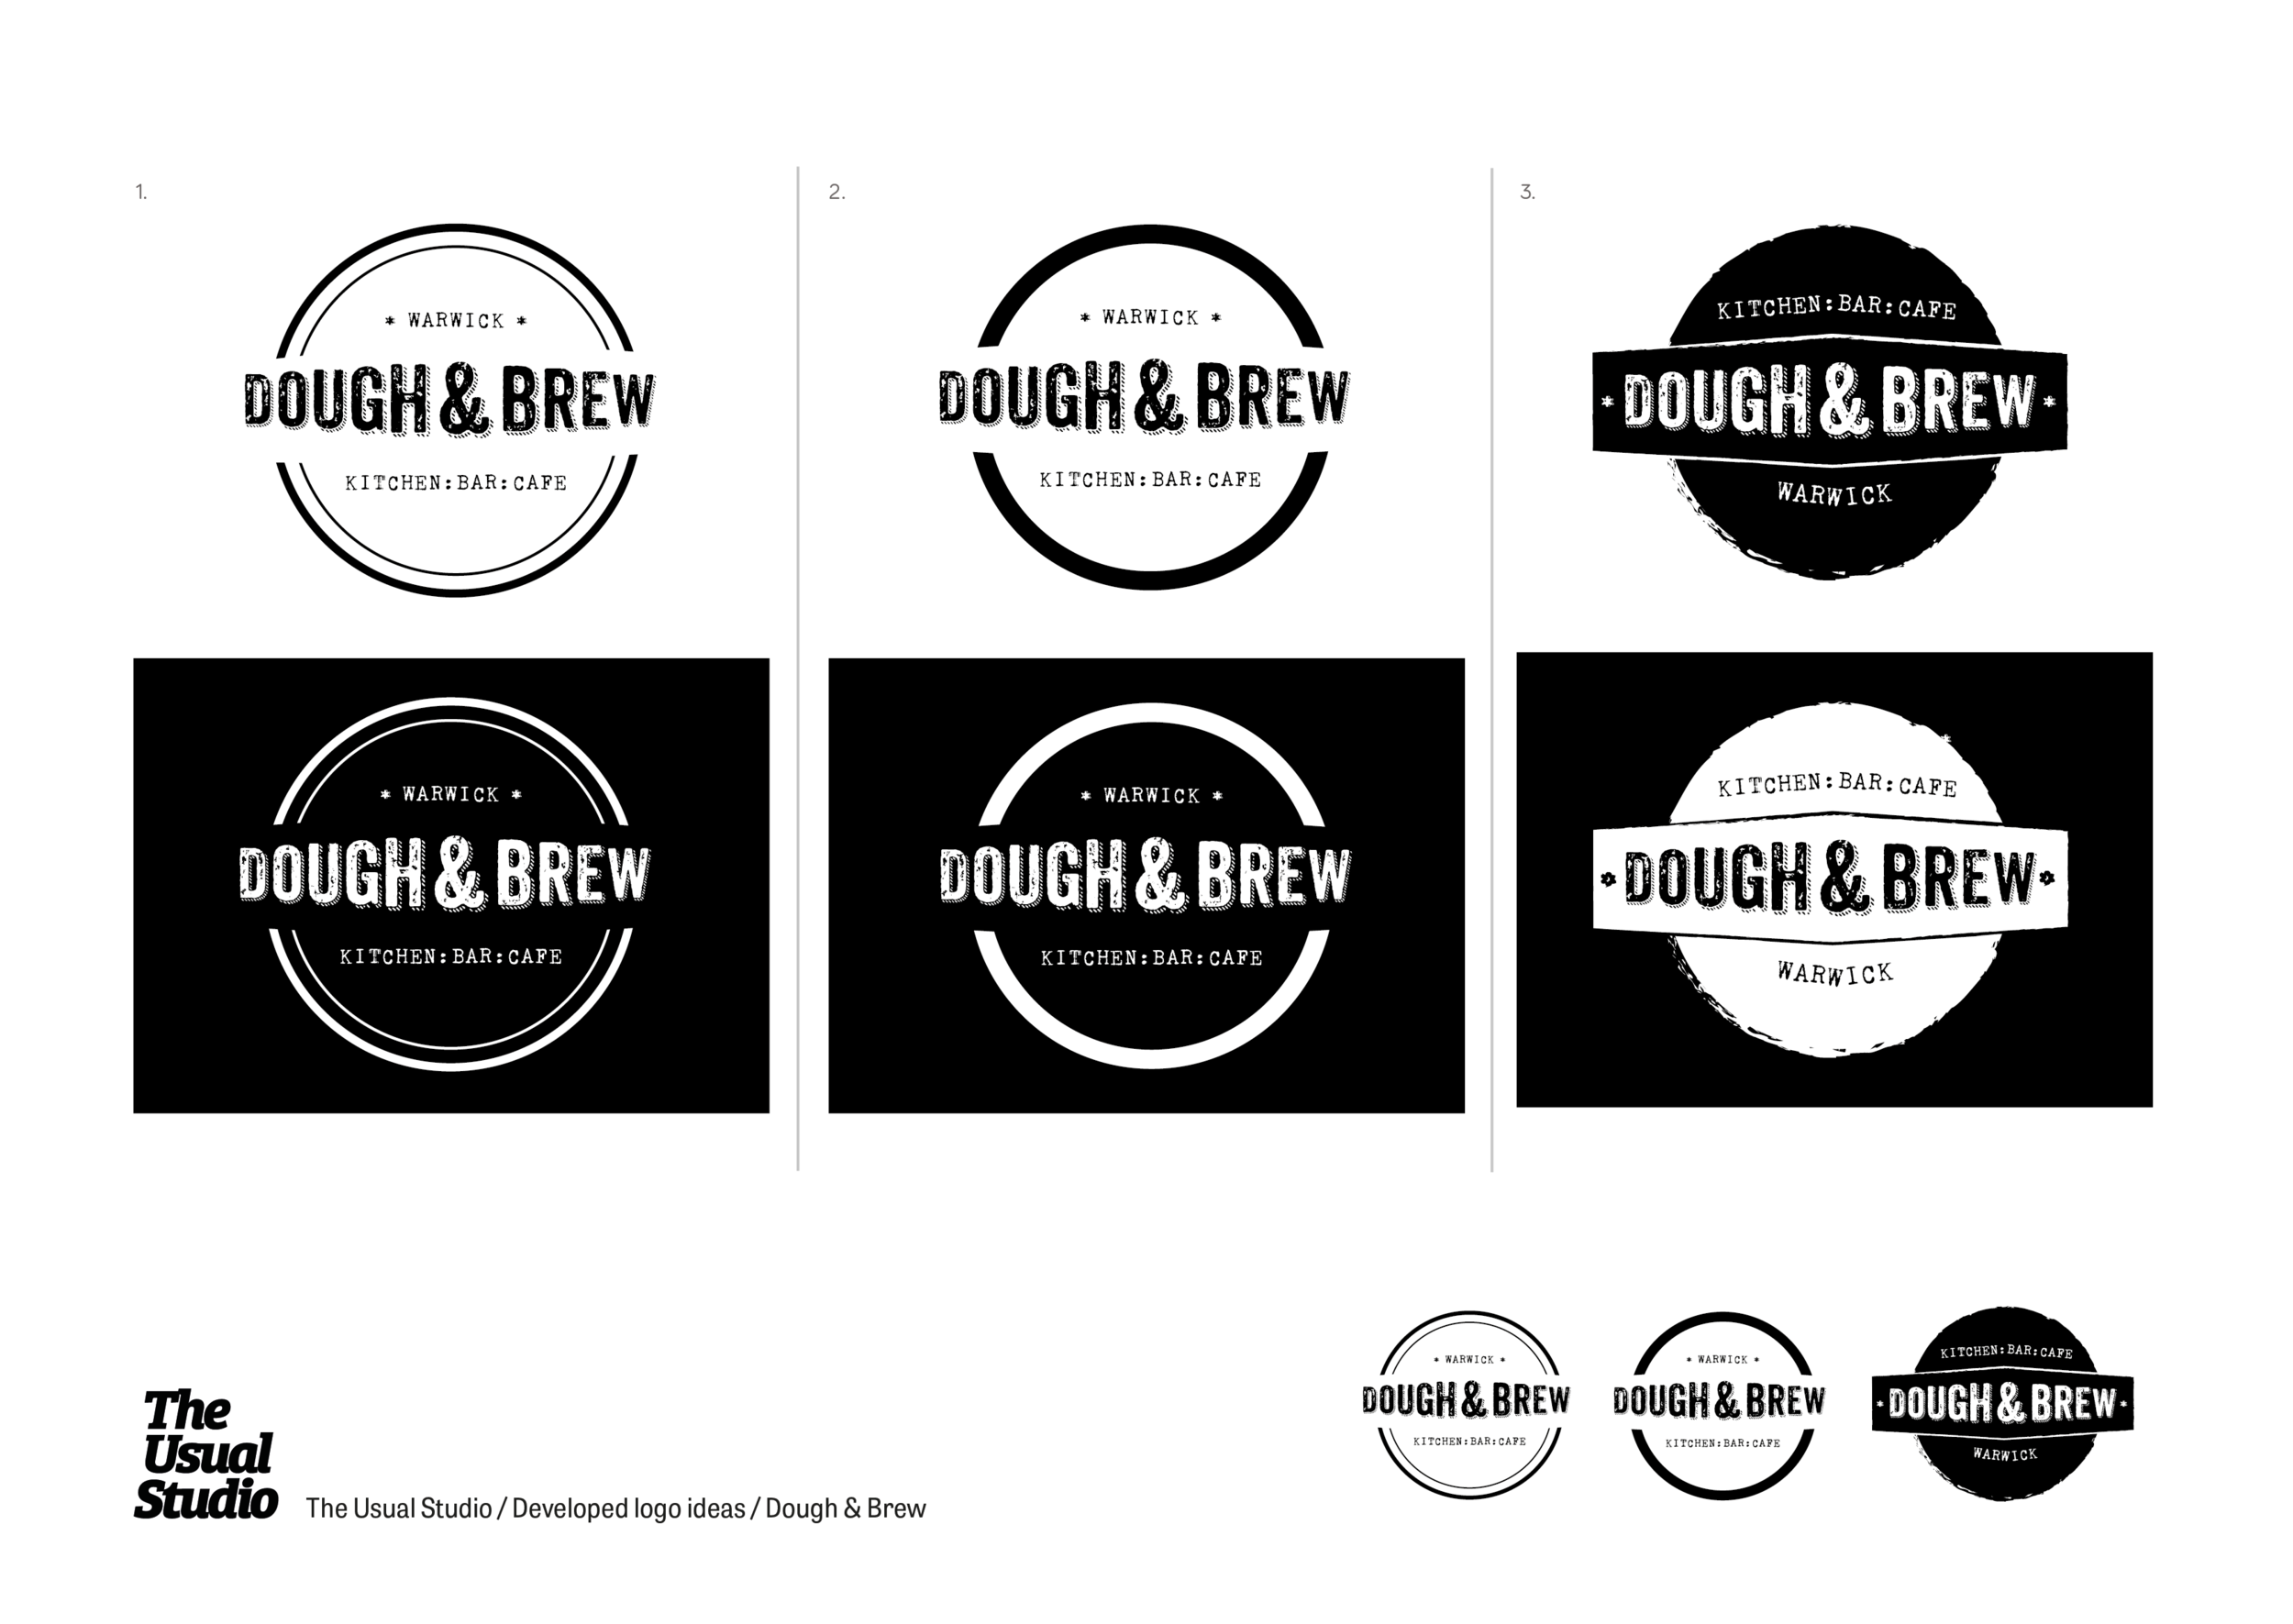 Developed ideas for the Dough & Brew identity